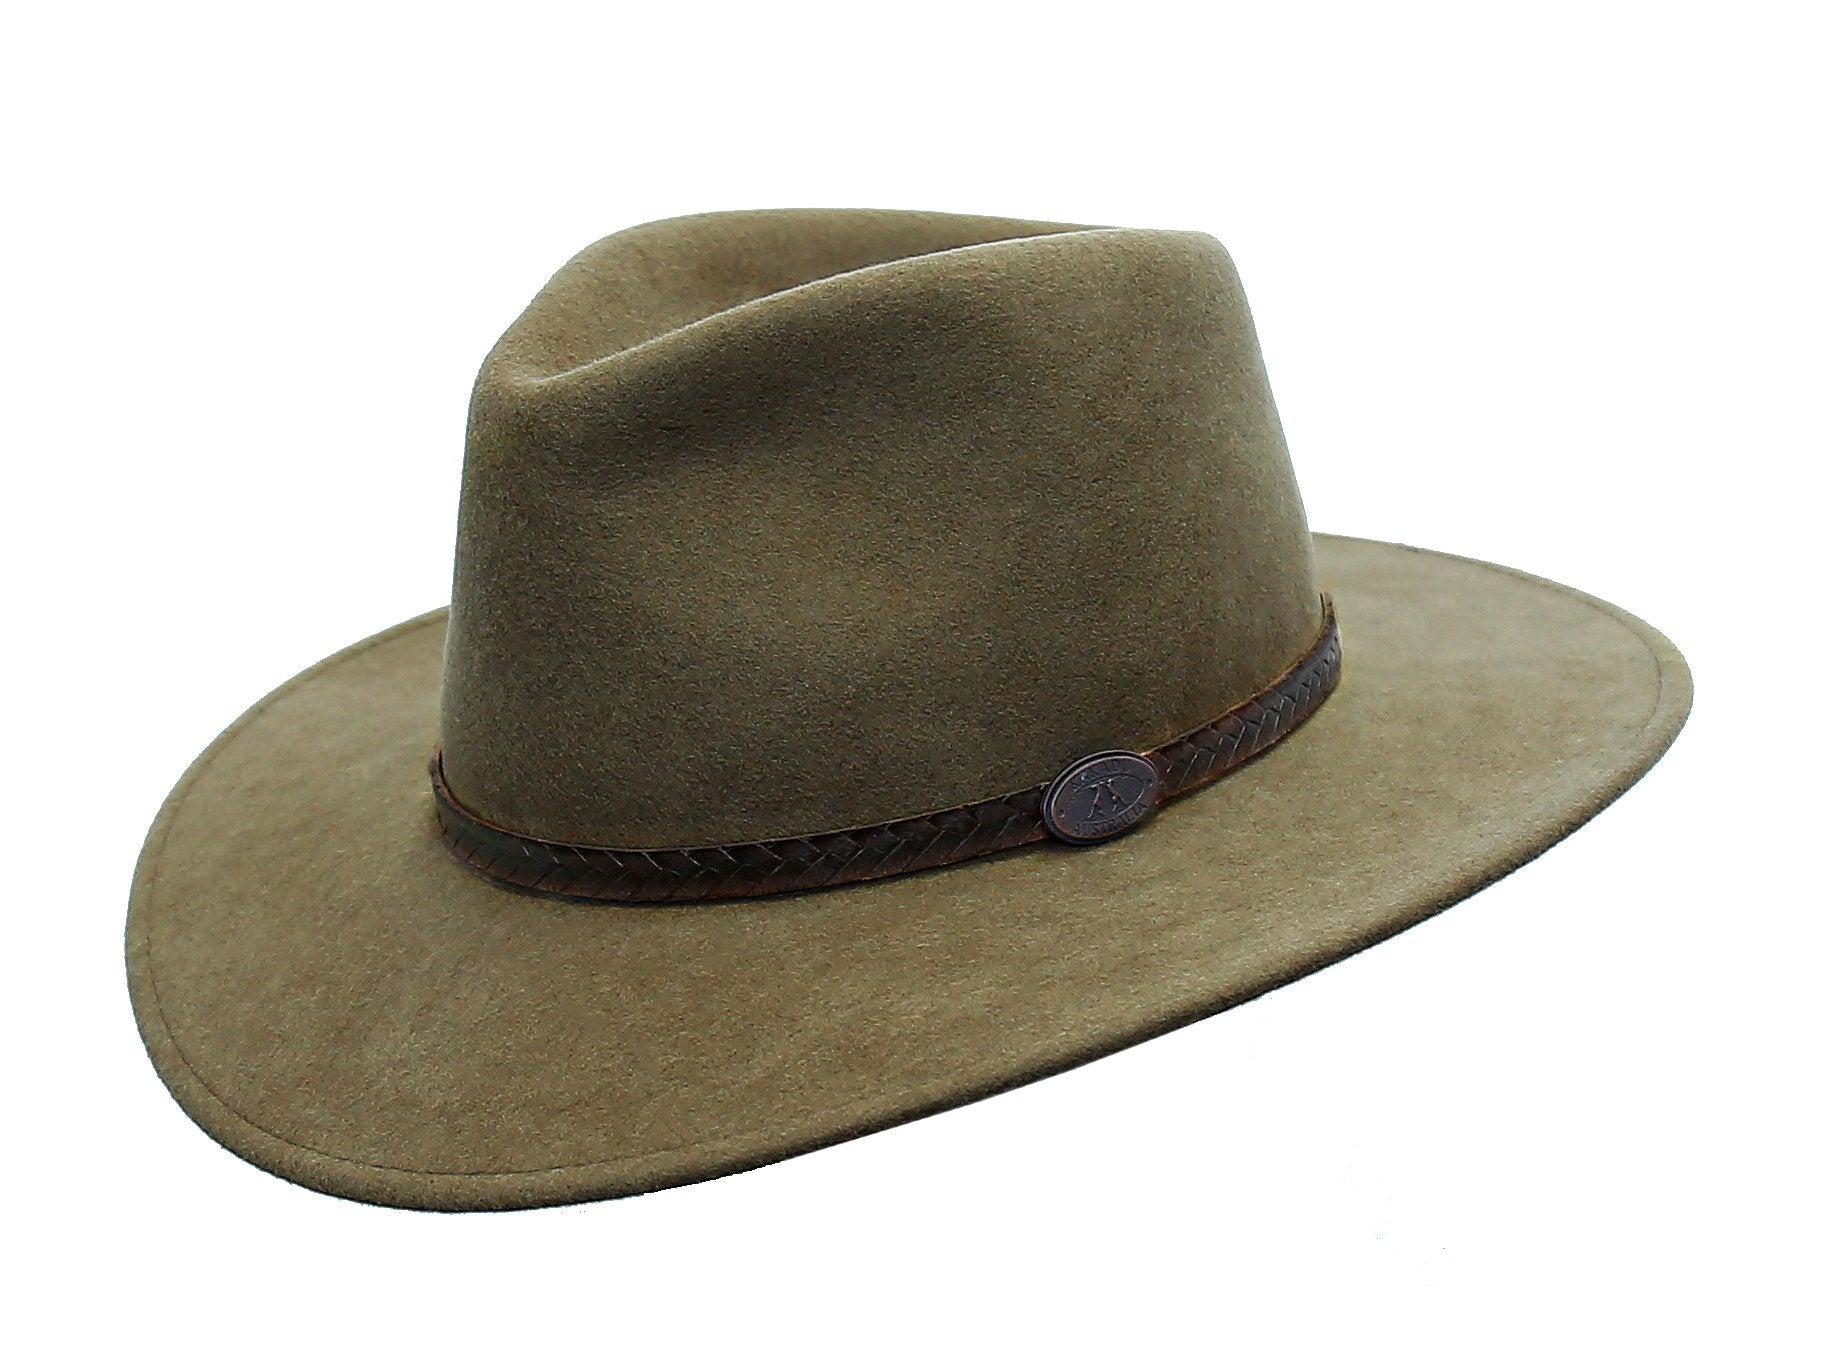 Australian Style Outdoor | Crushable wool felt hat Willis in taupe with leather hat band